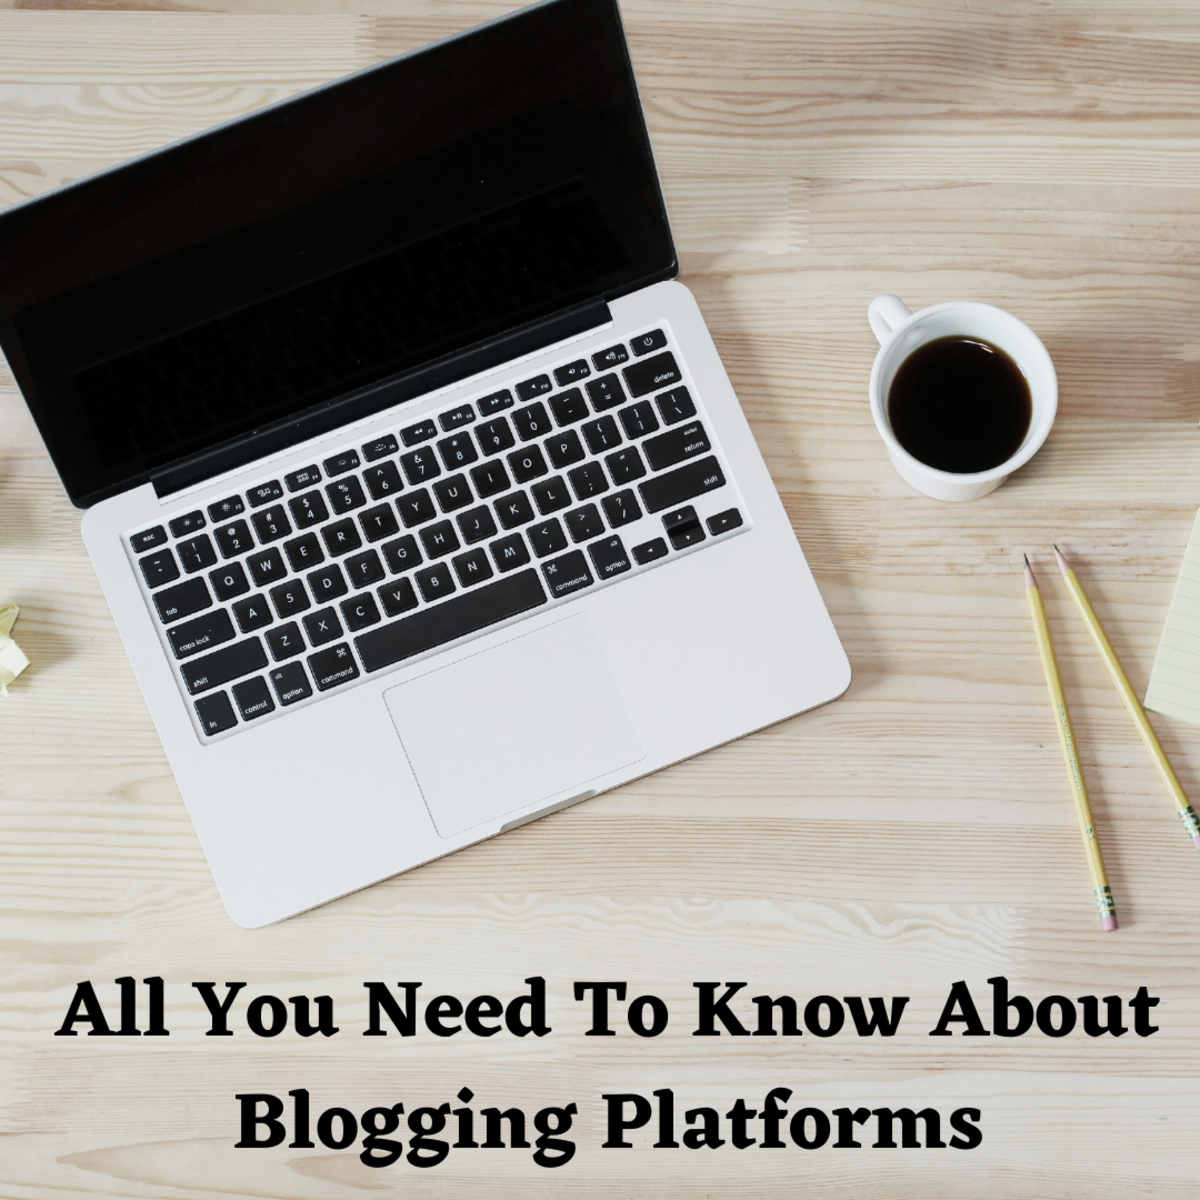 All You Need To Know About Blogging Platforms